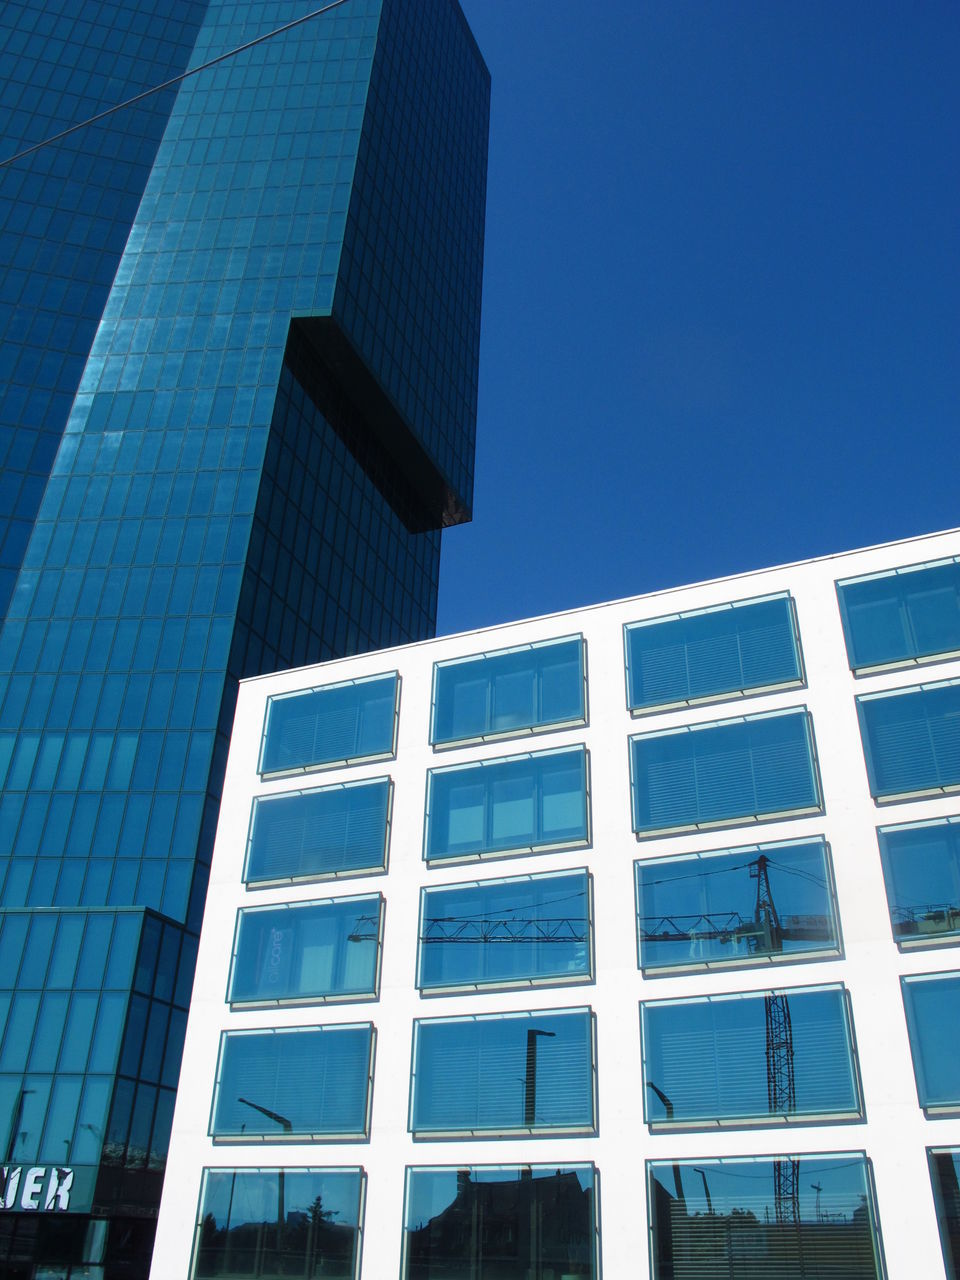 architecture, building exterior, built structure, modern, blue, low angle view, window, day, no people, outdoors, clear sky, skyscraper, city